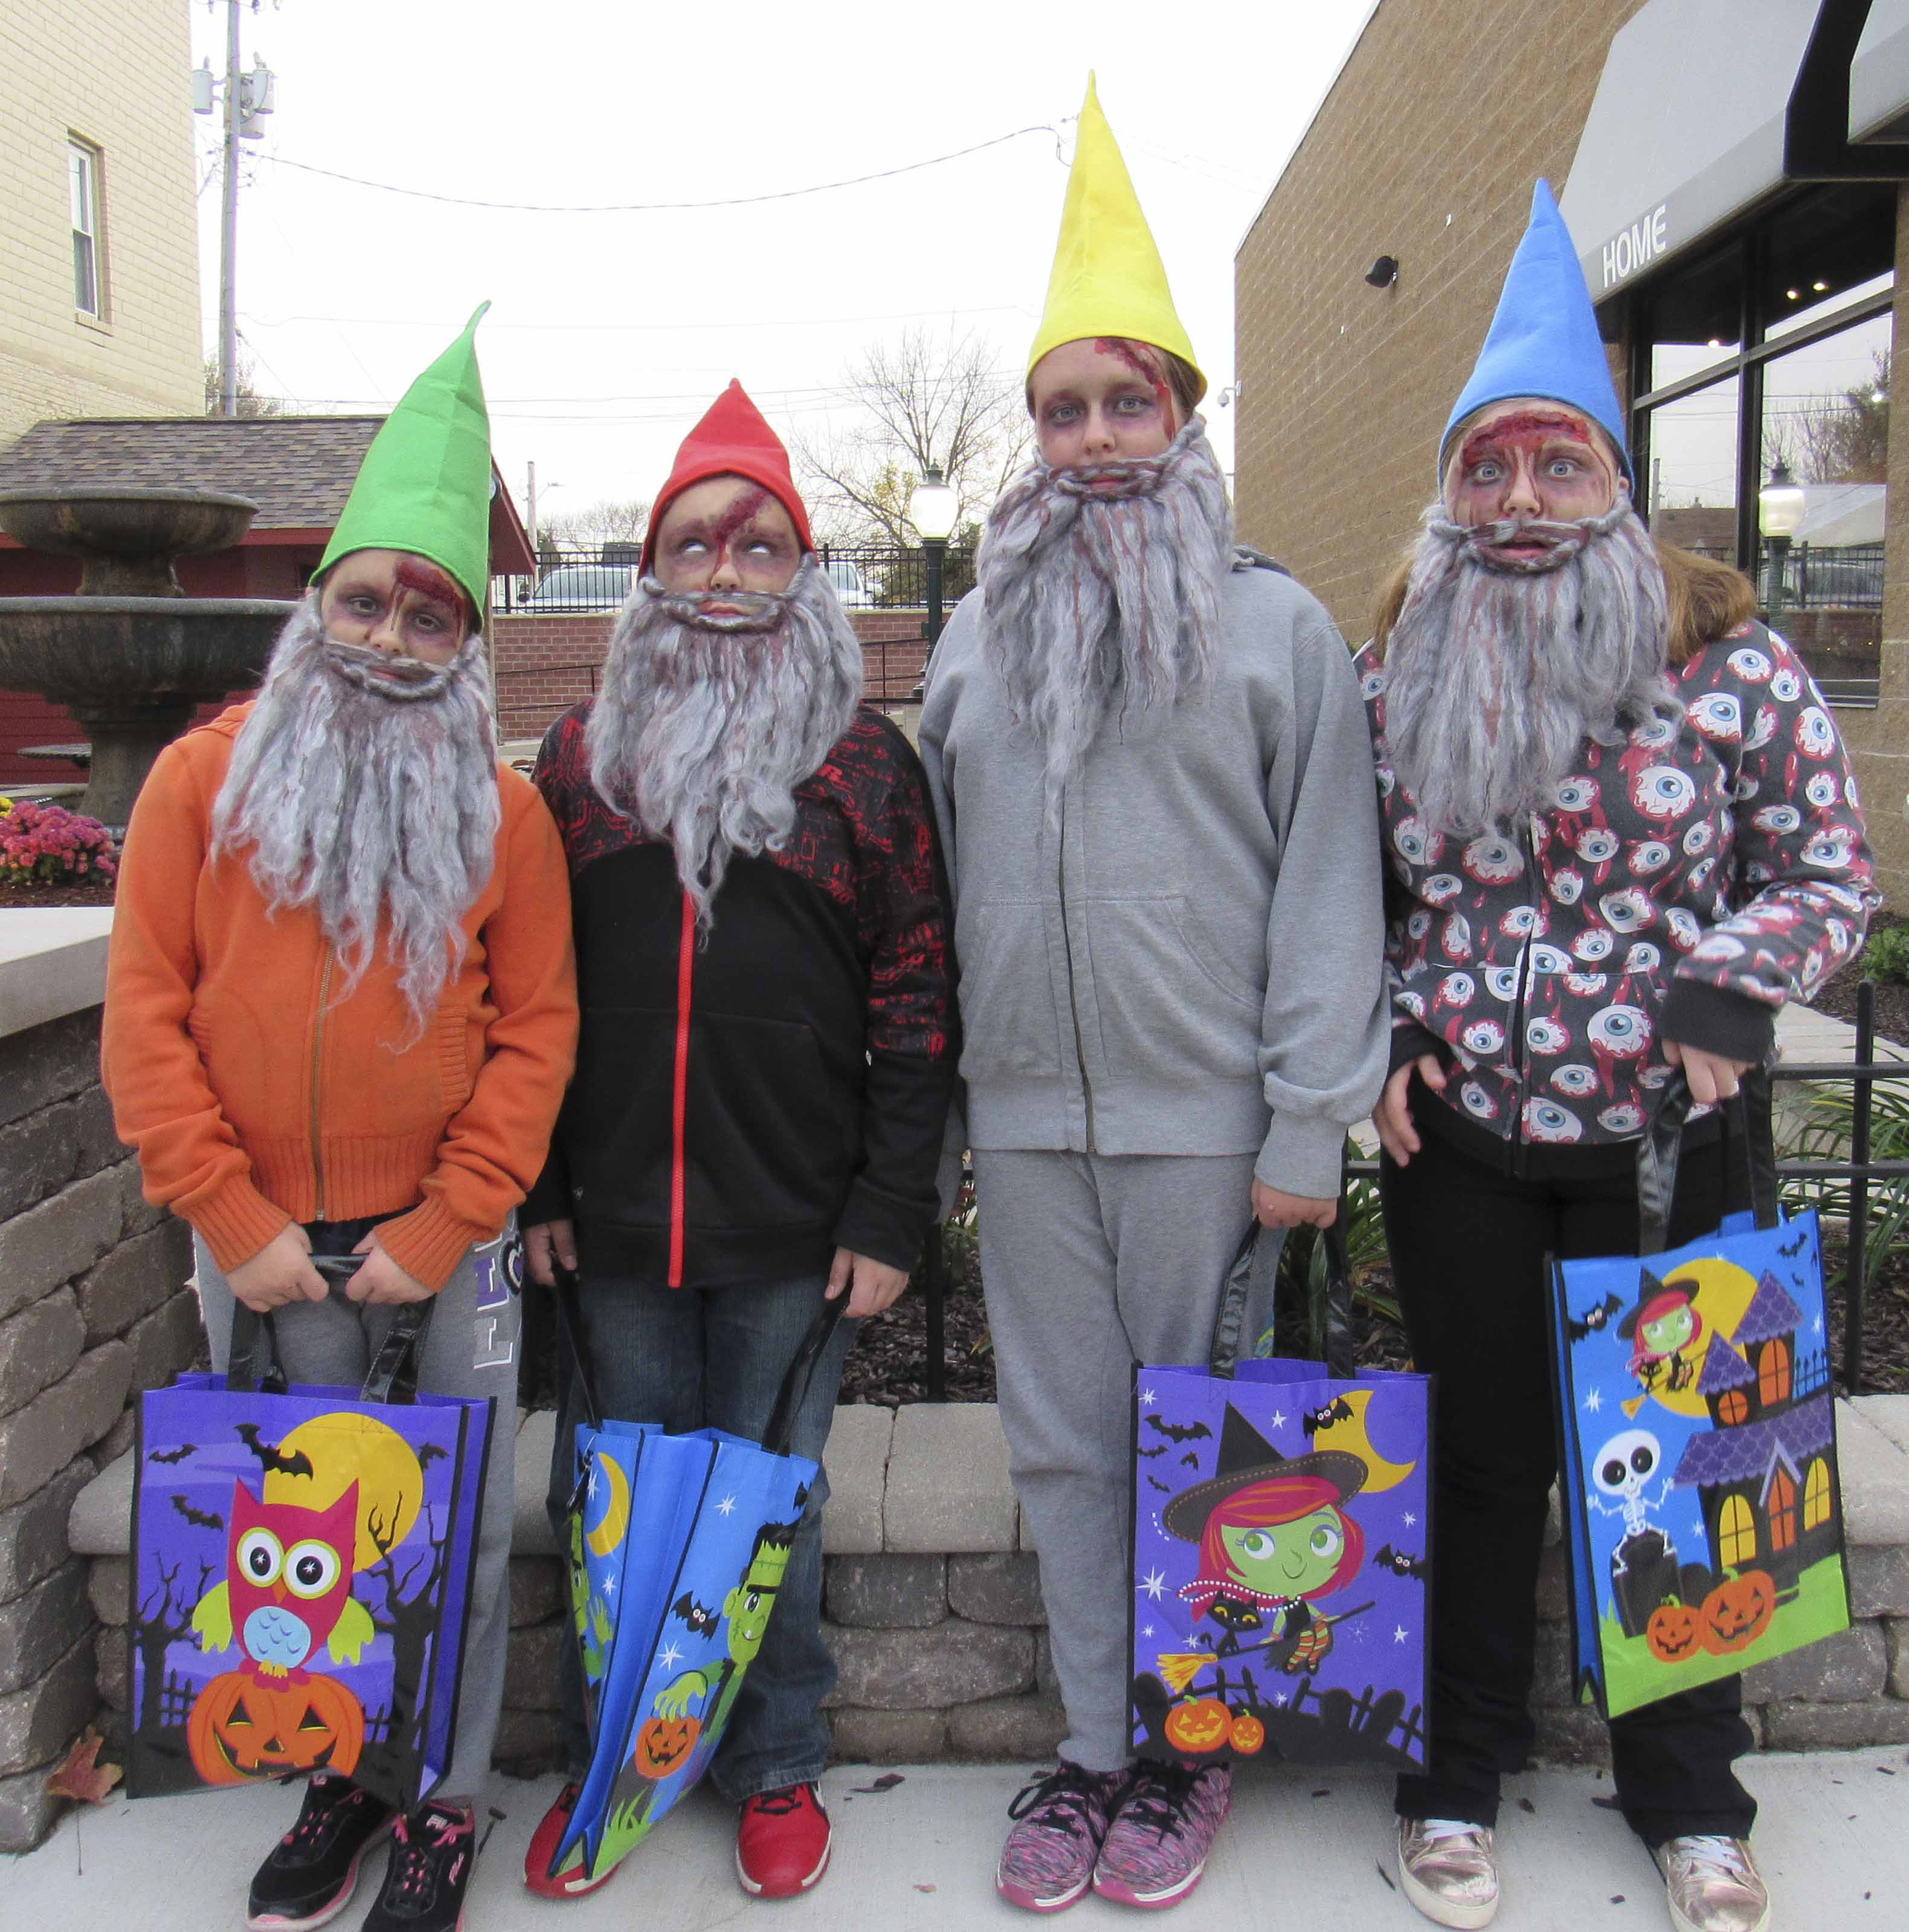 The walking dead gnomes pose for a picture in front of the downtown pocket park during Treats on the Streets. From left are Lexi Gaal, Preston Schultz, Destiny Gaal, and Alexis Schultz.